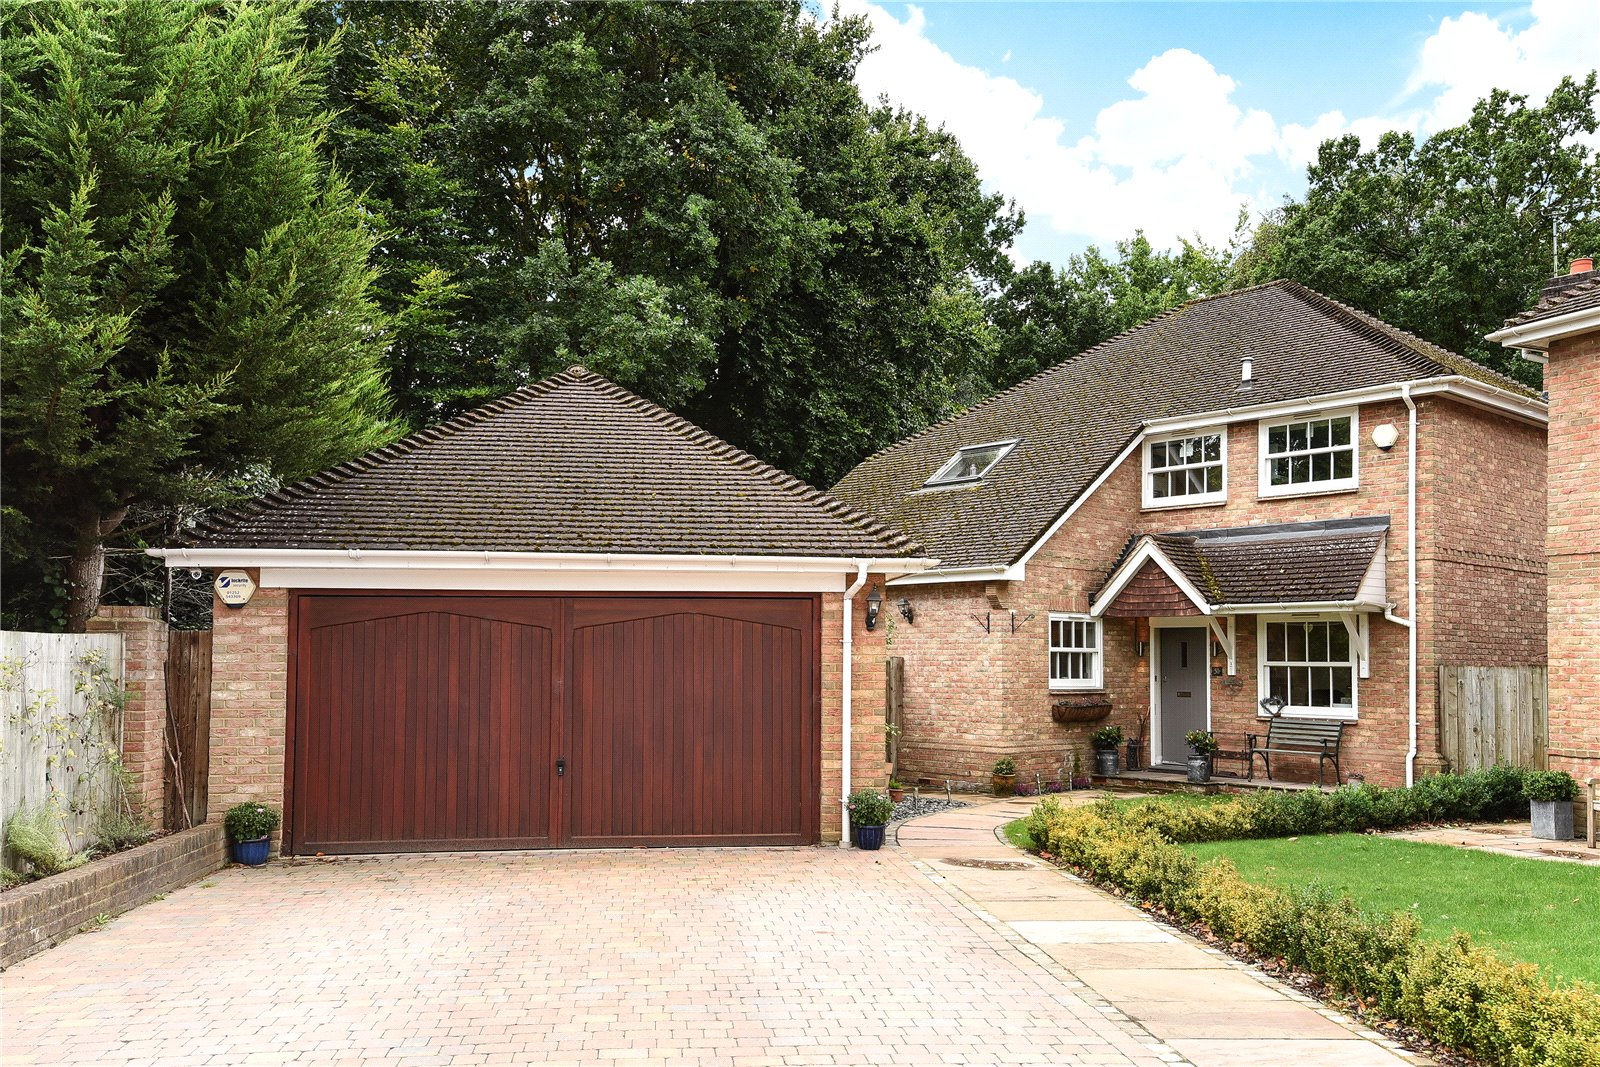 4 Bedrooms Detached House for sale in France Hill Drive, Camberley, Surrey, GU15